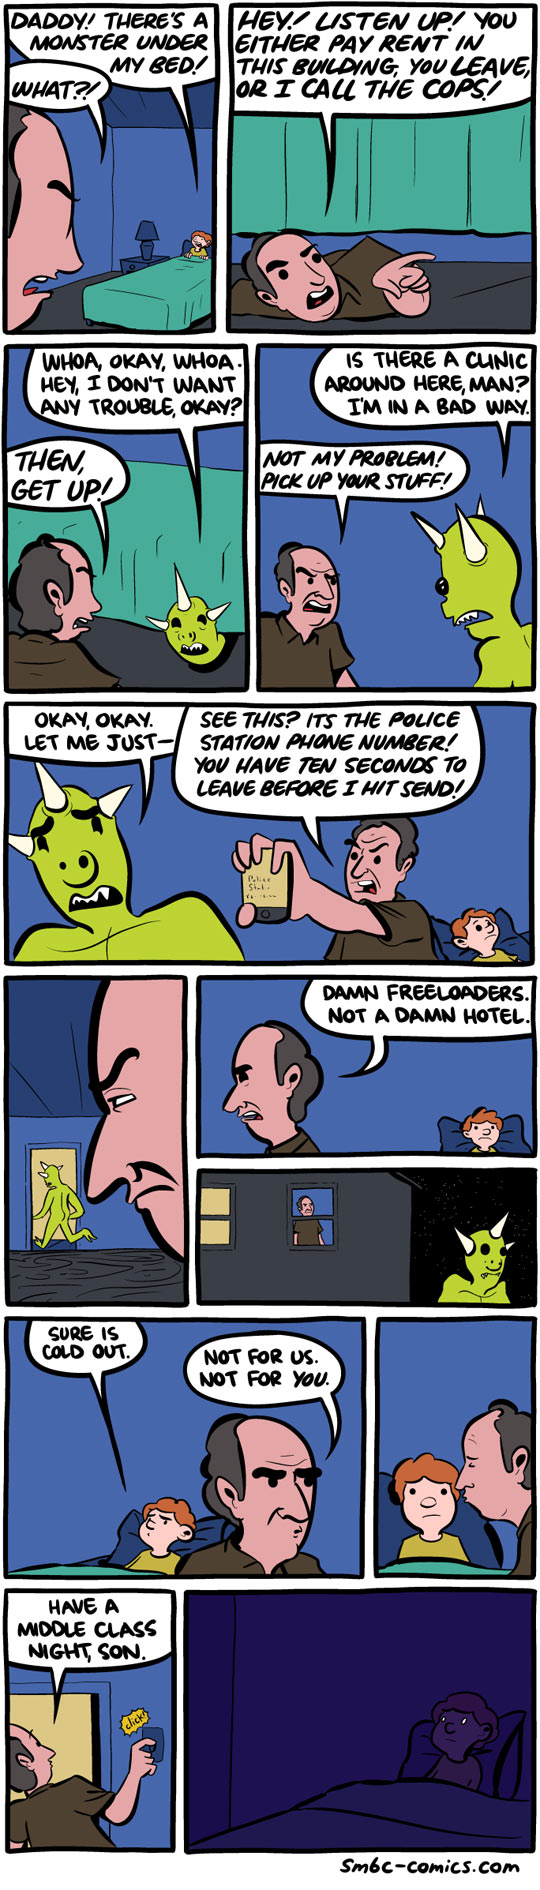 funny-monster-under-bed-comic